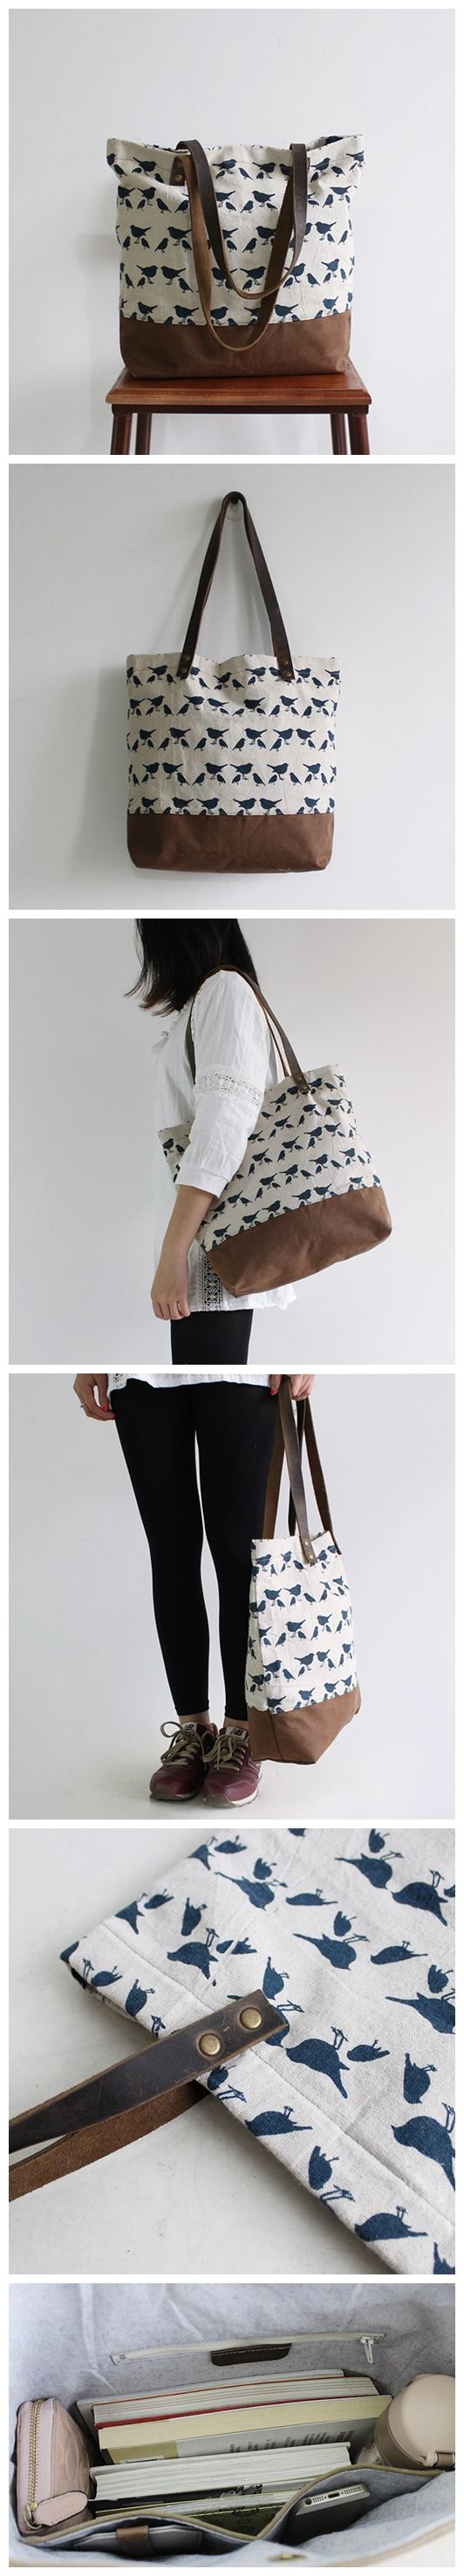 Waxed Canvas Tote with Leather Women's Fashion Bag School Bag Daily Bag Carry All Bag 14050 --------------------------------- - 16oz waxed canvas - Cotton lining - Inside one zipper pocket, one phone